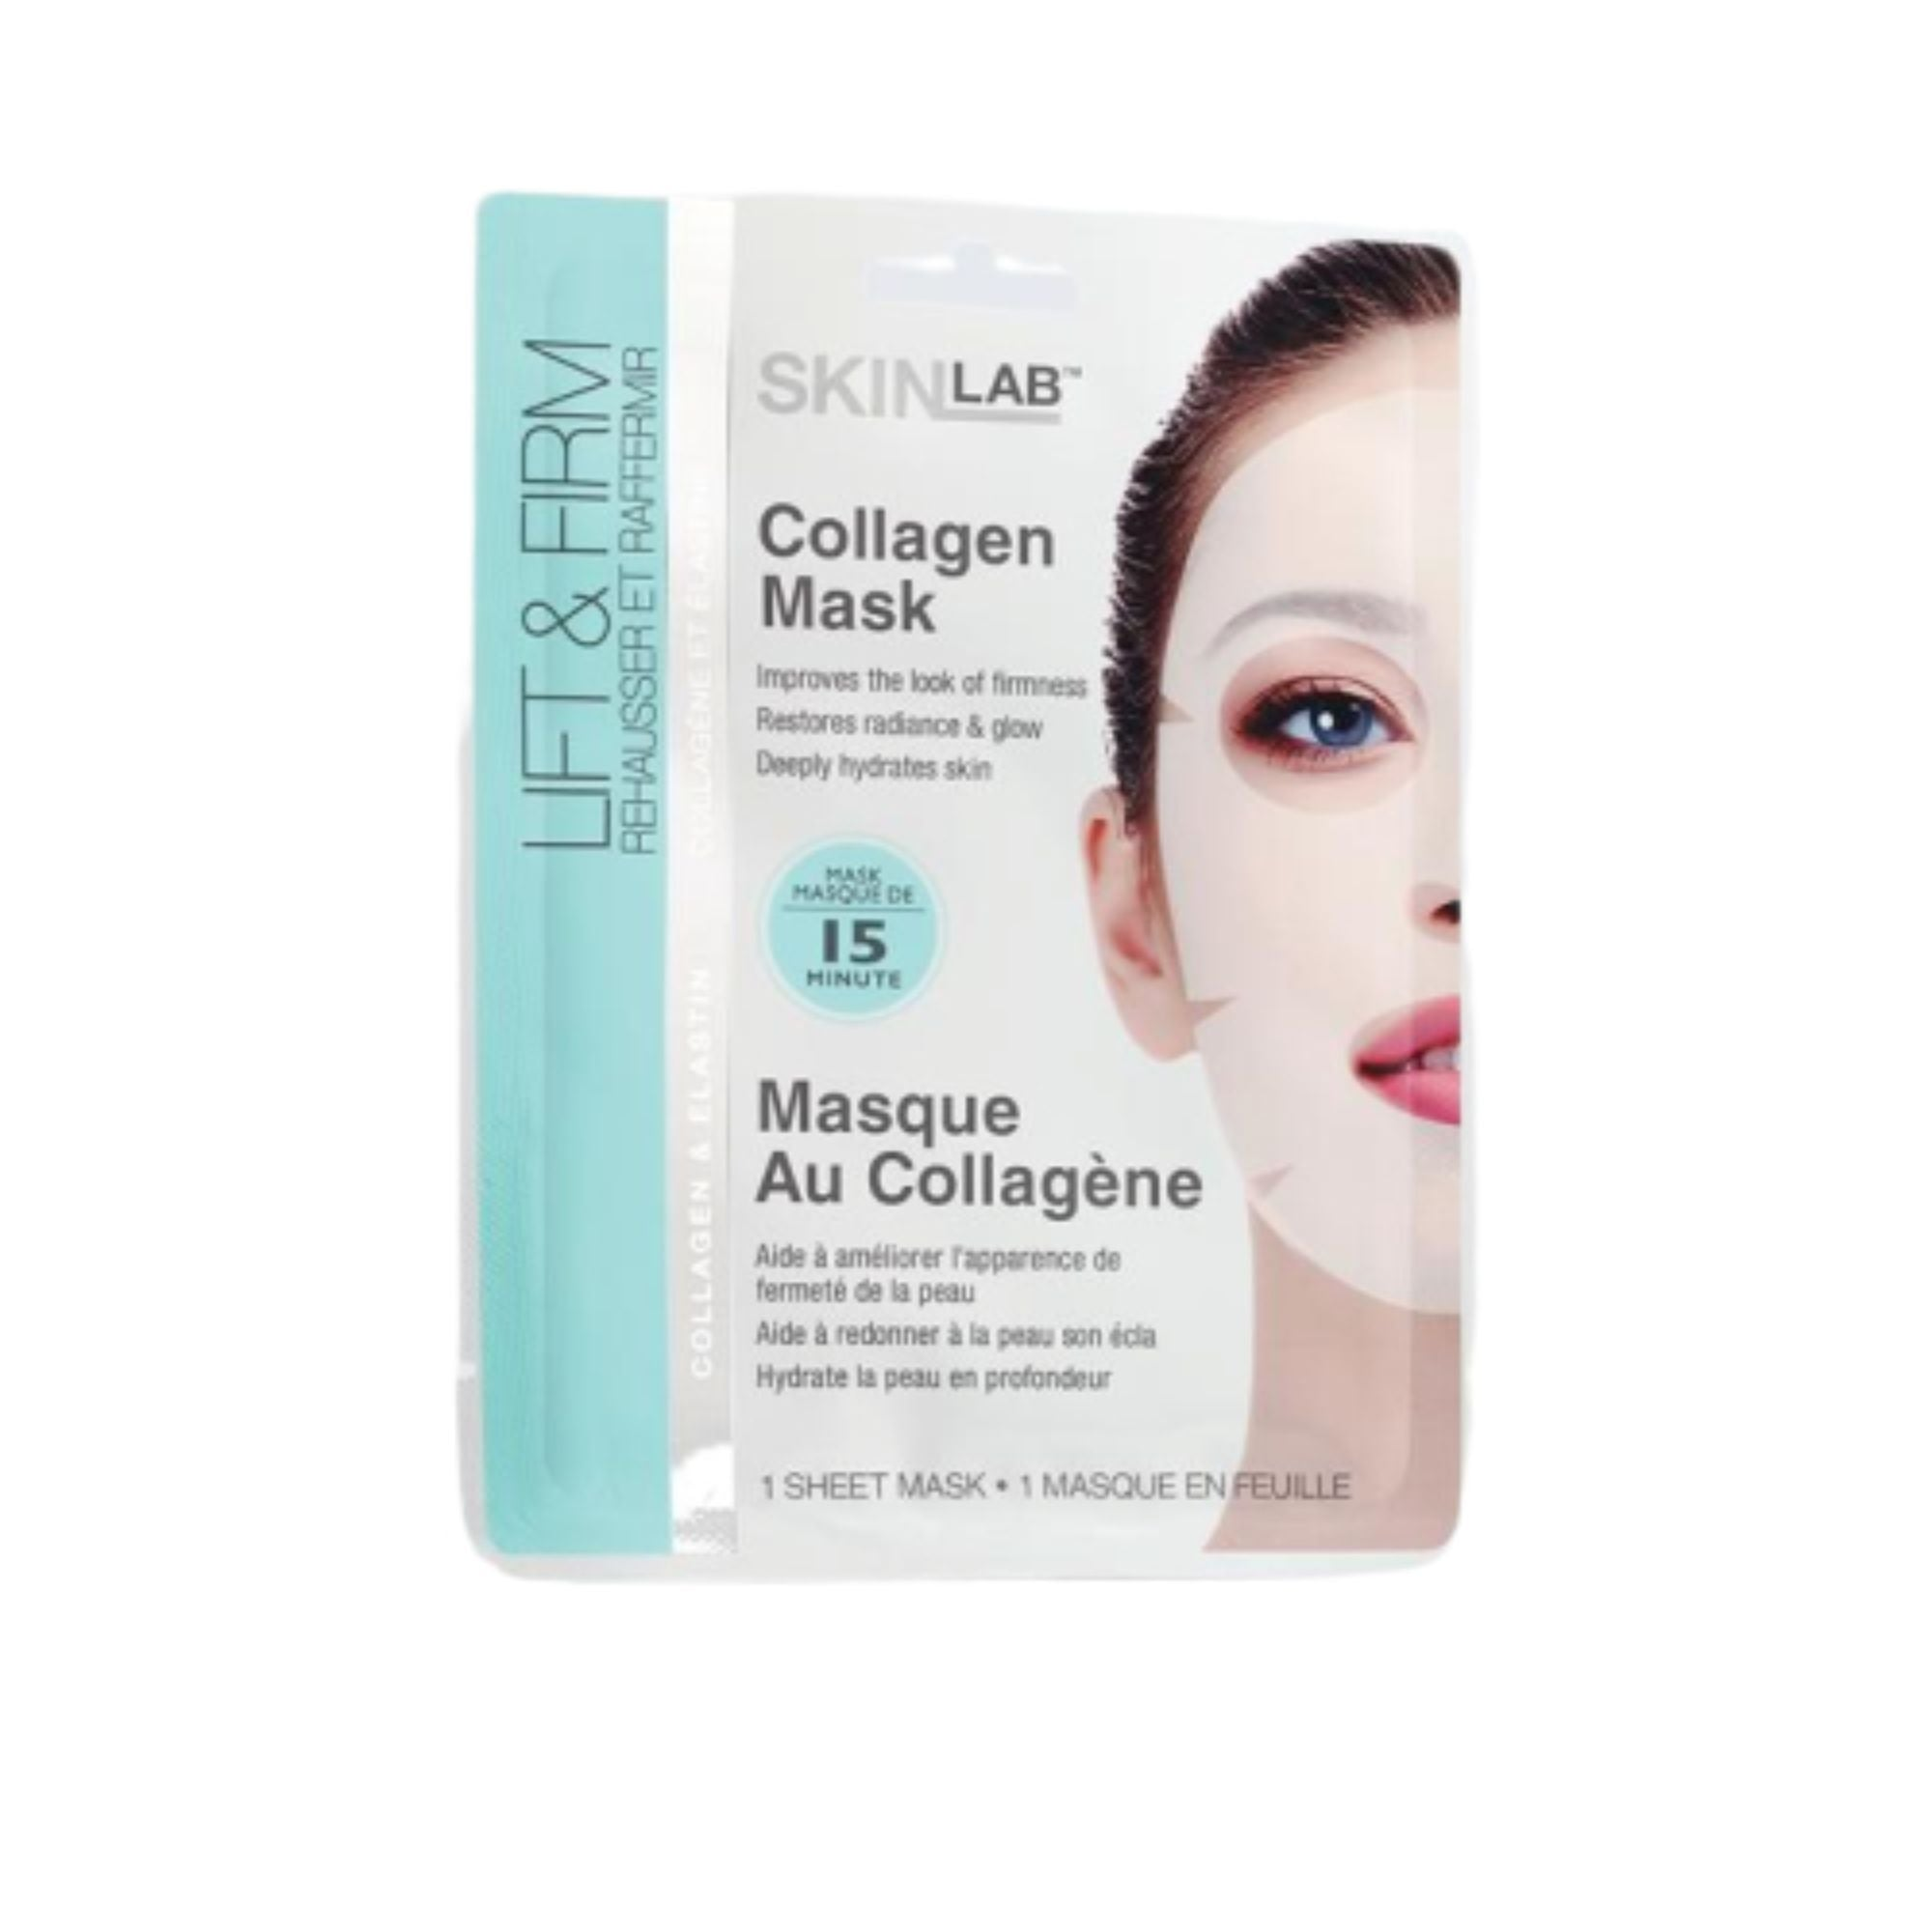 Lift & Firm Collagen Sheet Mask